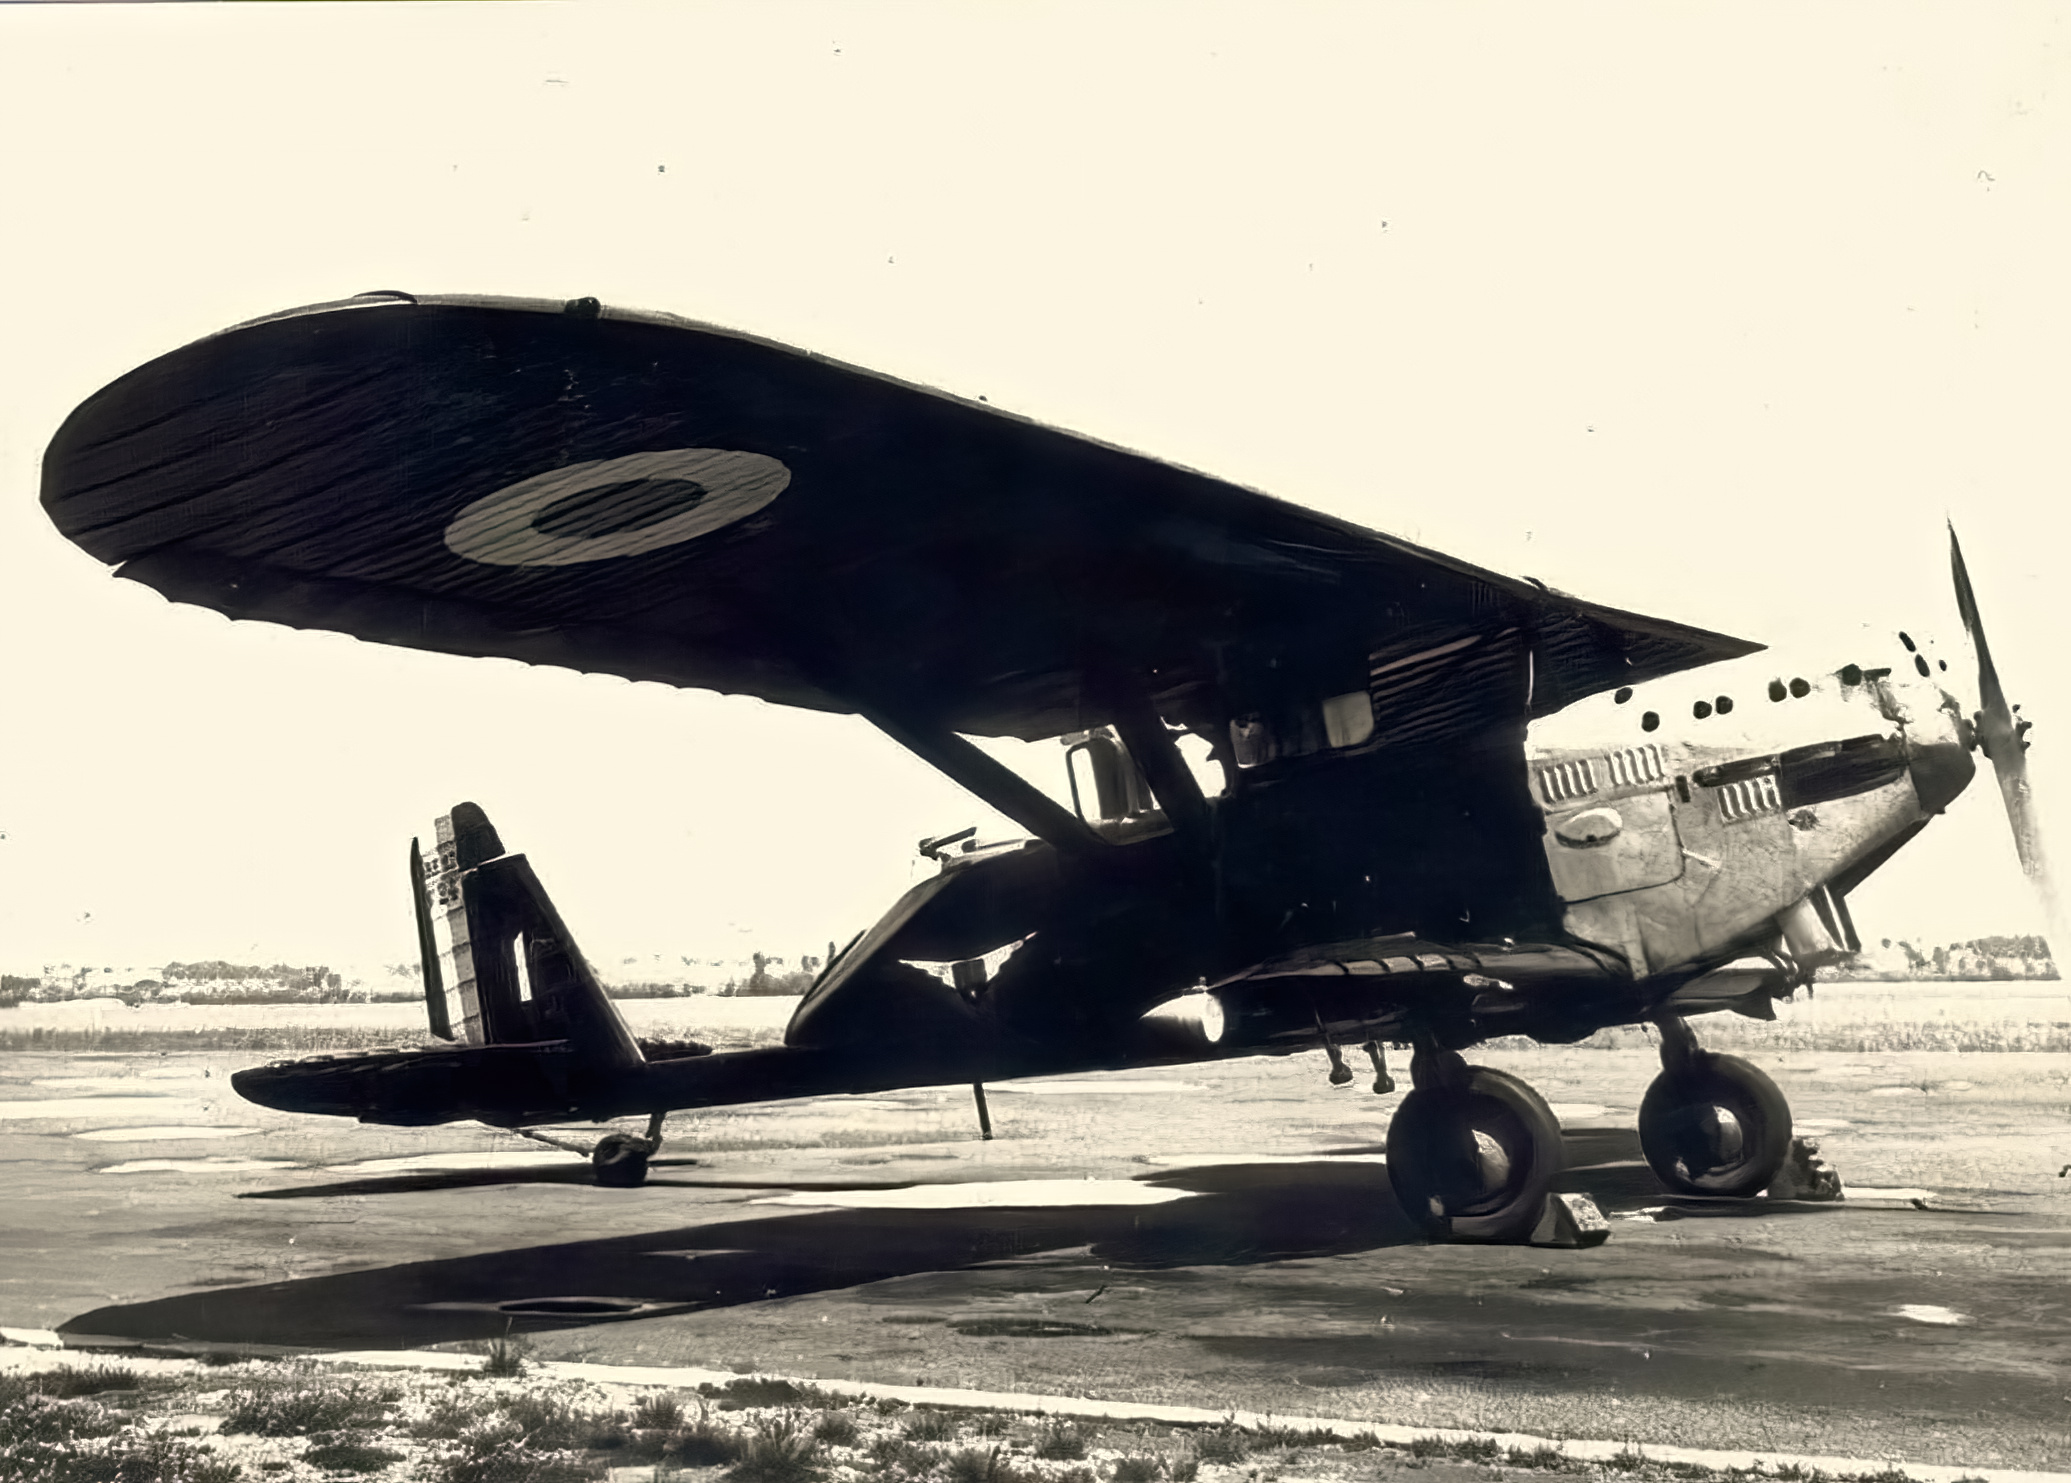 French Airforce Breguet 270 sn24 at its base in France 1940 ebay 01